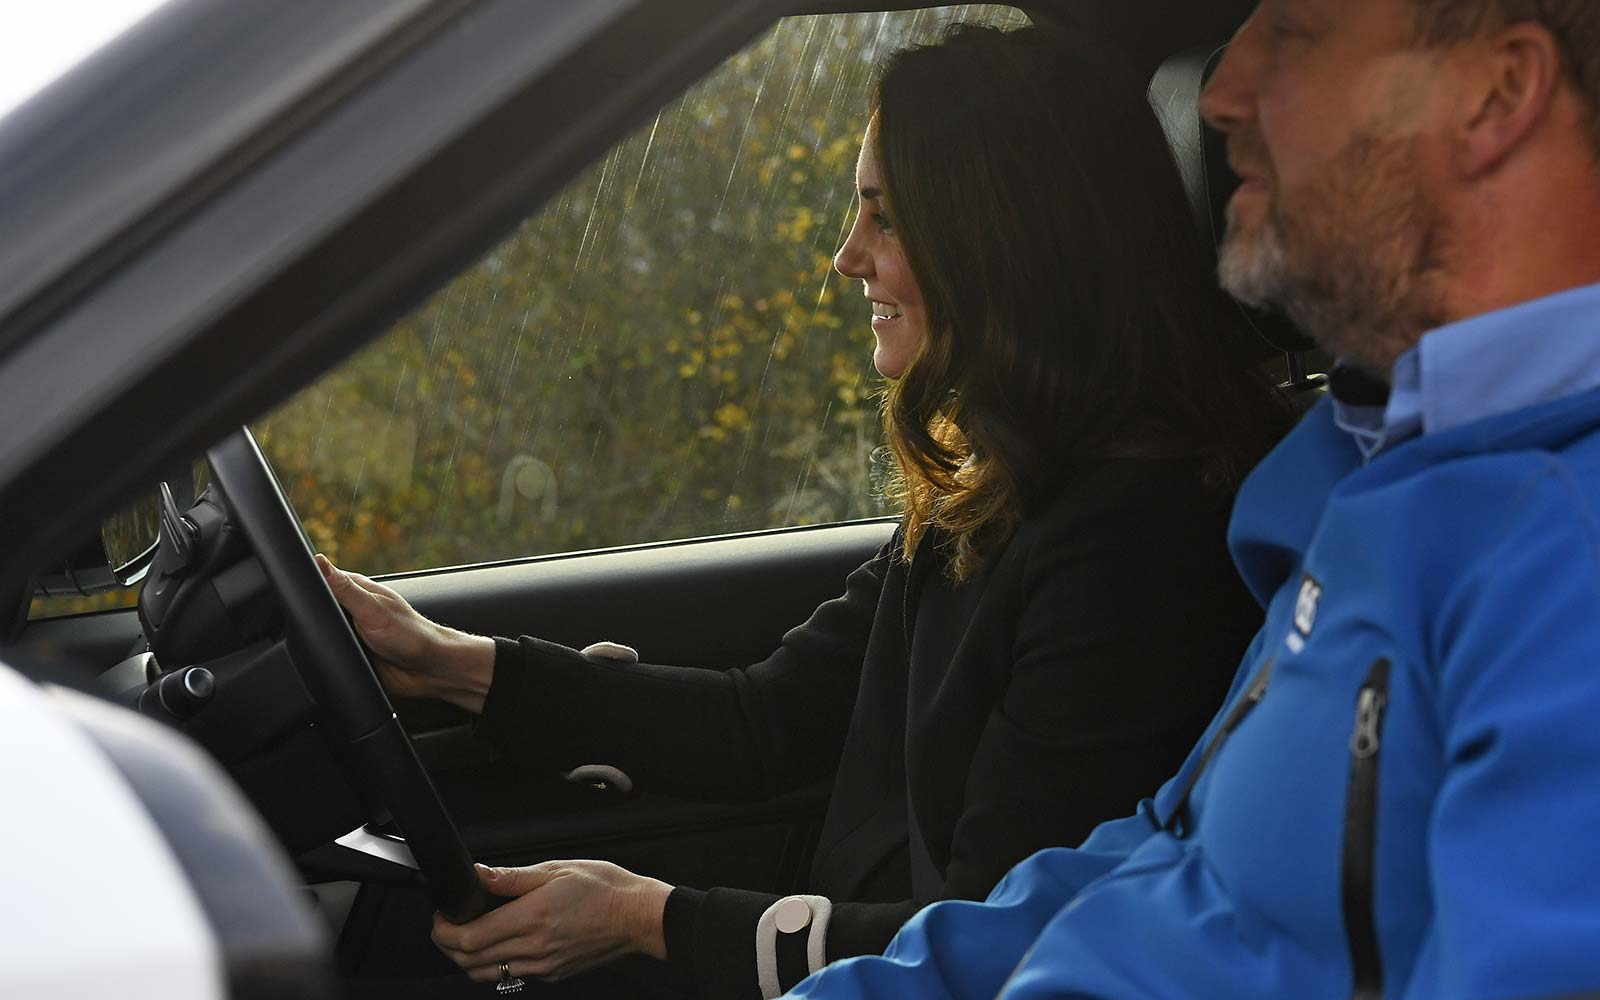 Kate Middleton Prince William Royal Birmingham UK Range Rover car auto factory